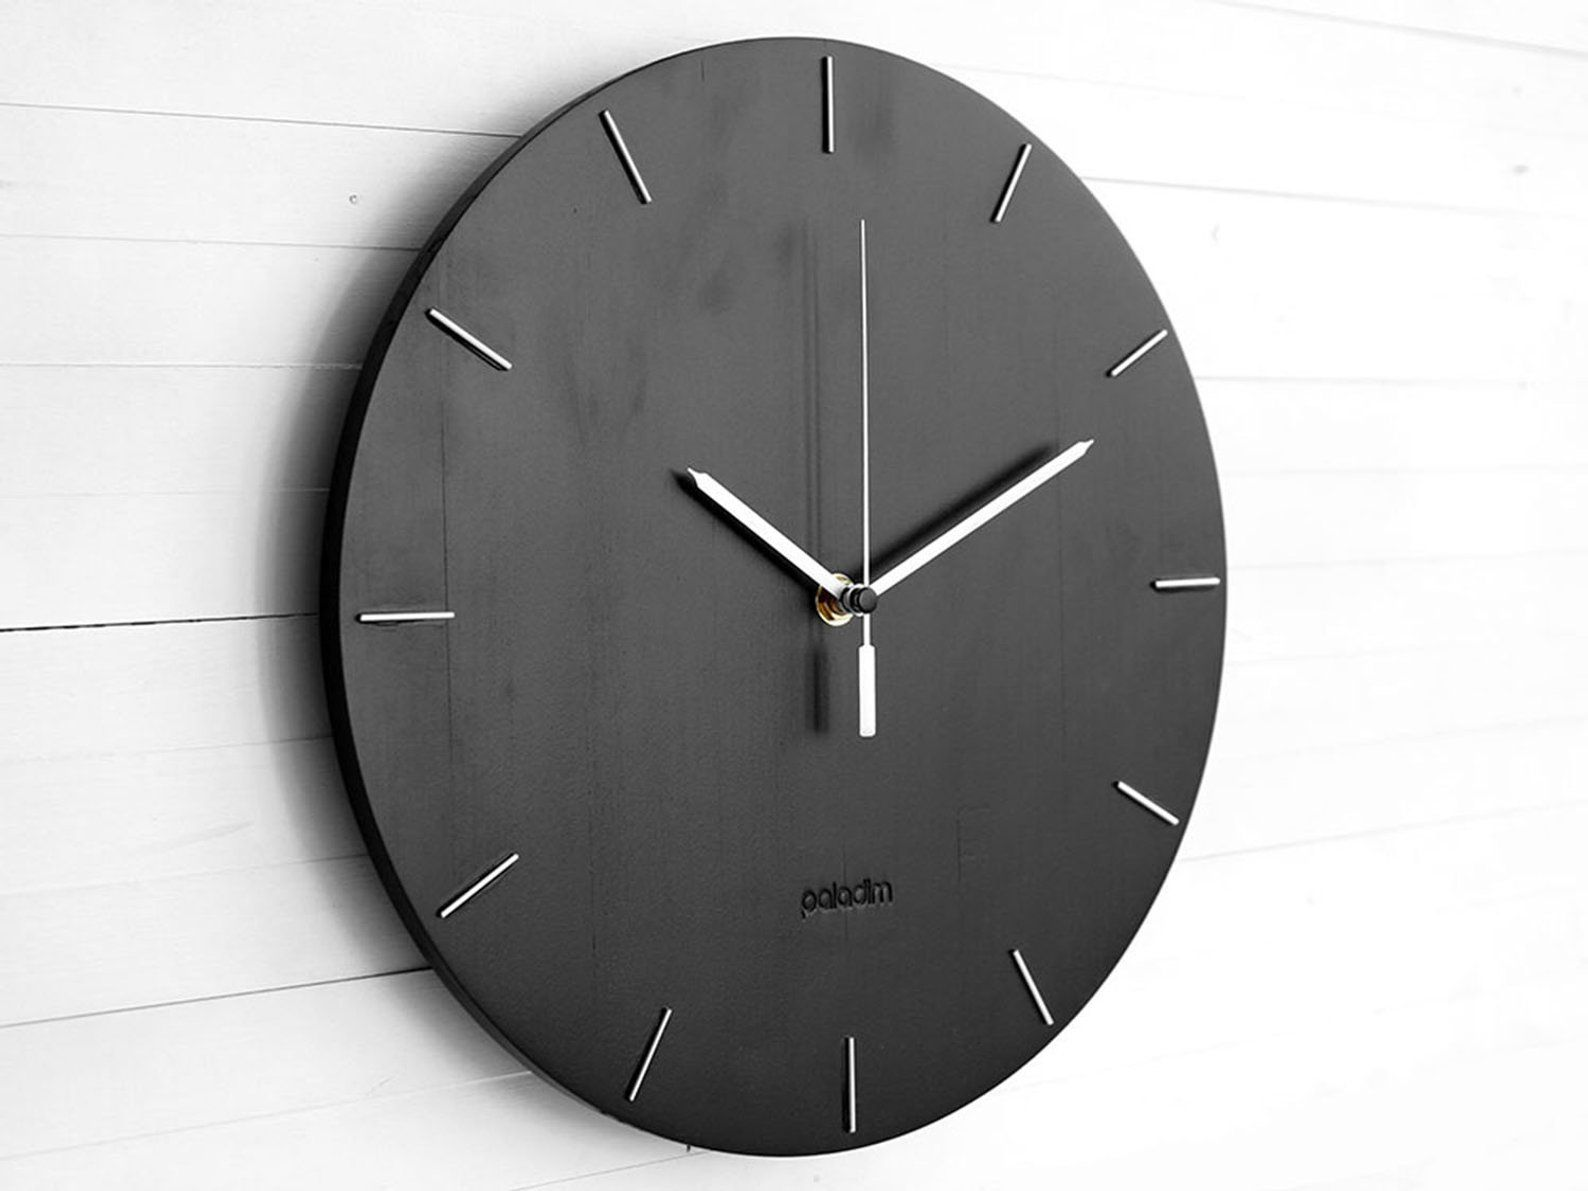 Modern Wooden Round Wall Clock 12 The Oval Contemporary Minimal Industrial Style Home And Office Decor Housewarming Gift Relojes De Pared Reloj Casas